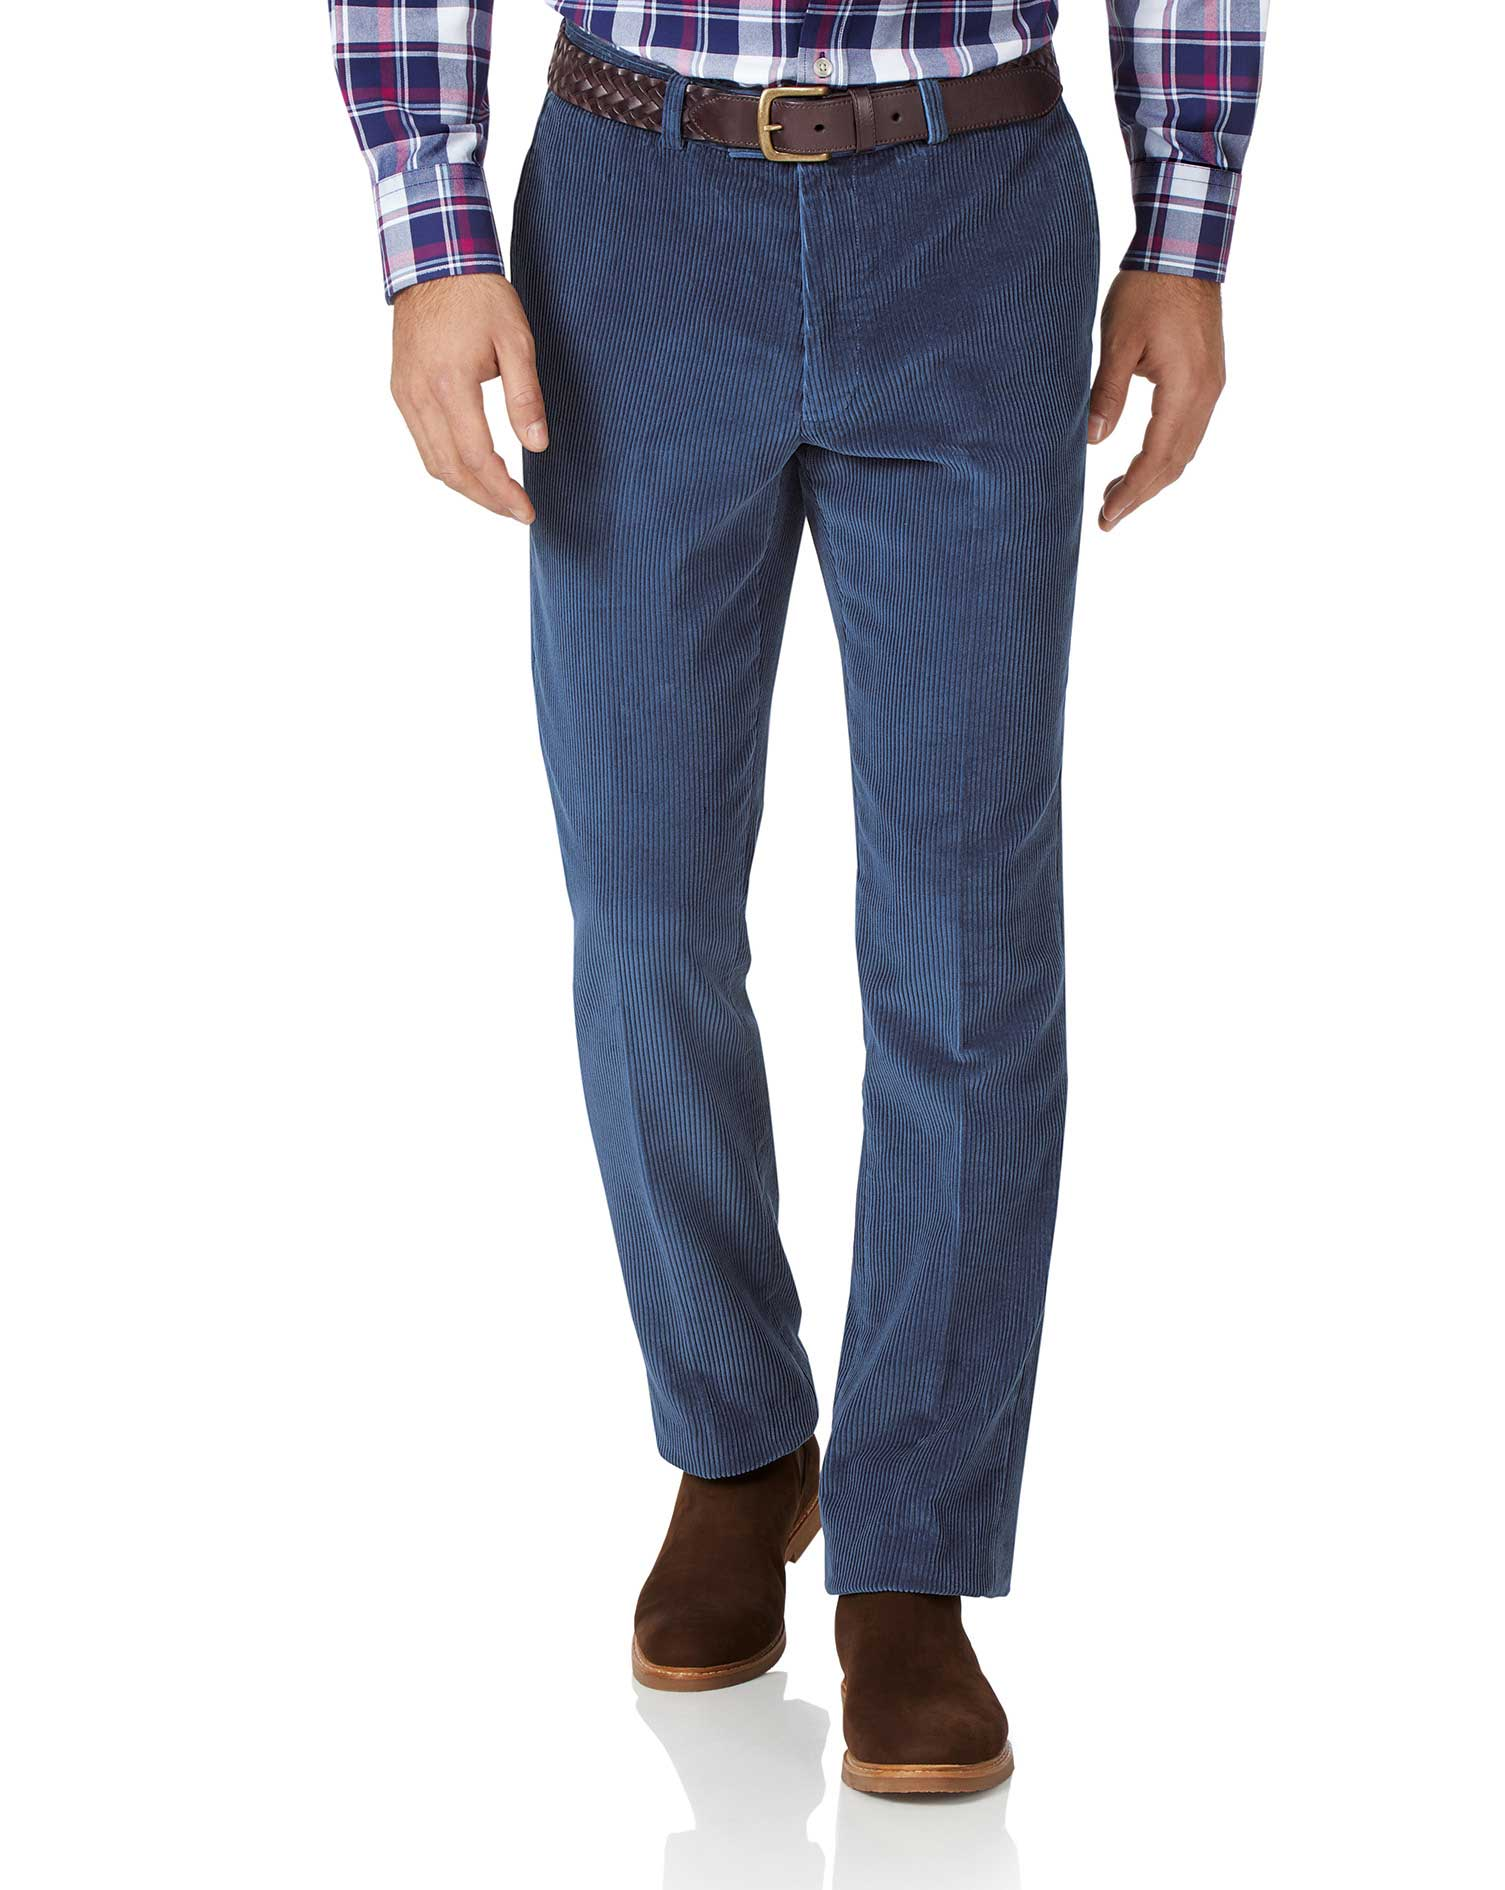 Airforce Blue Slim Fit Jumbo Corduroy Trousers Size W36 L34 by Charles Tyrwhitt